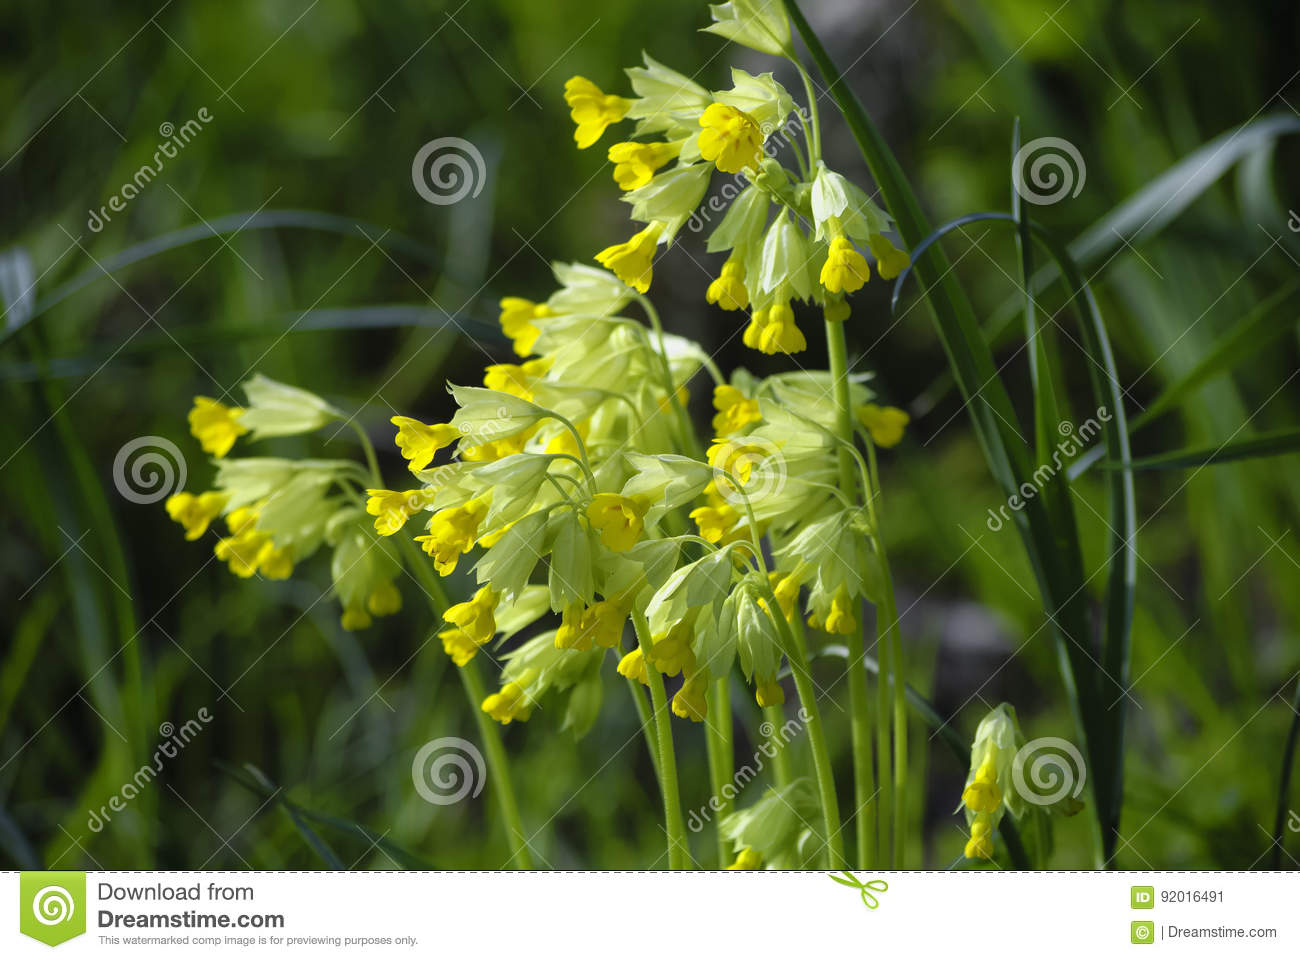 A bush of small yellow flowers in green grass stock image image download a bush of small yellow flowers in green grass stock image image of mightylinksfo